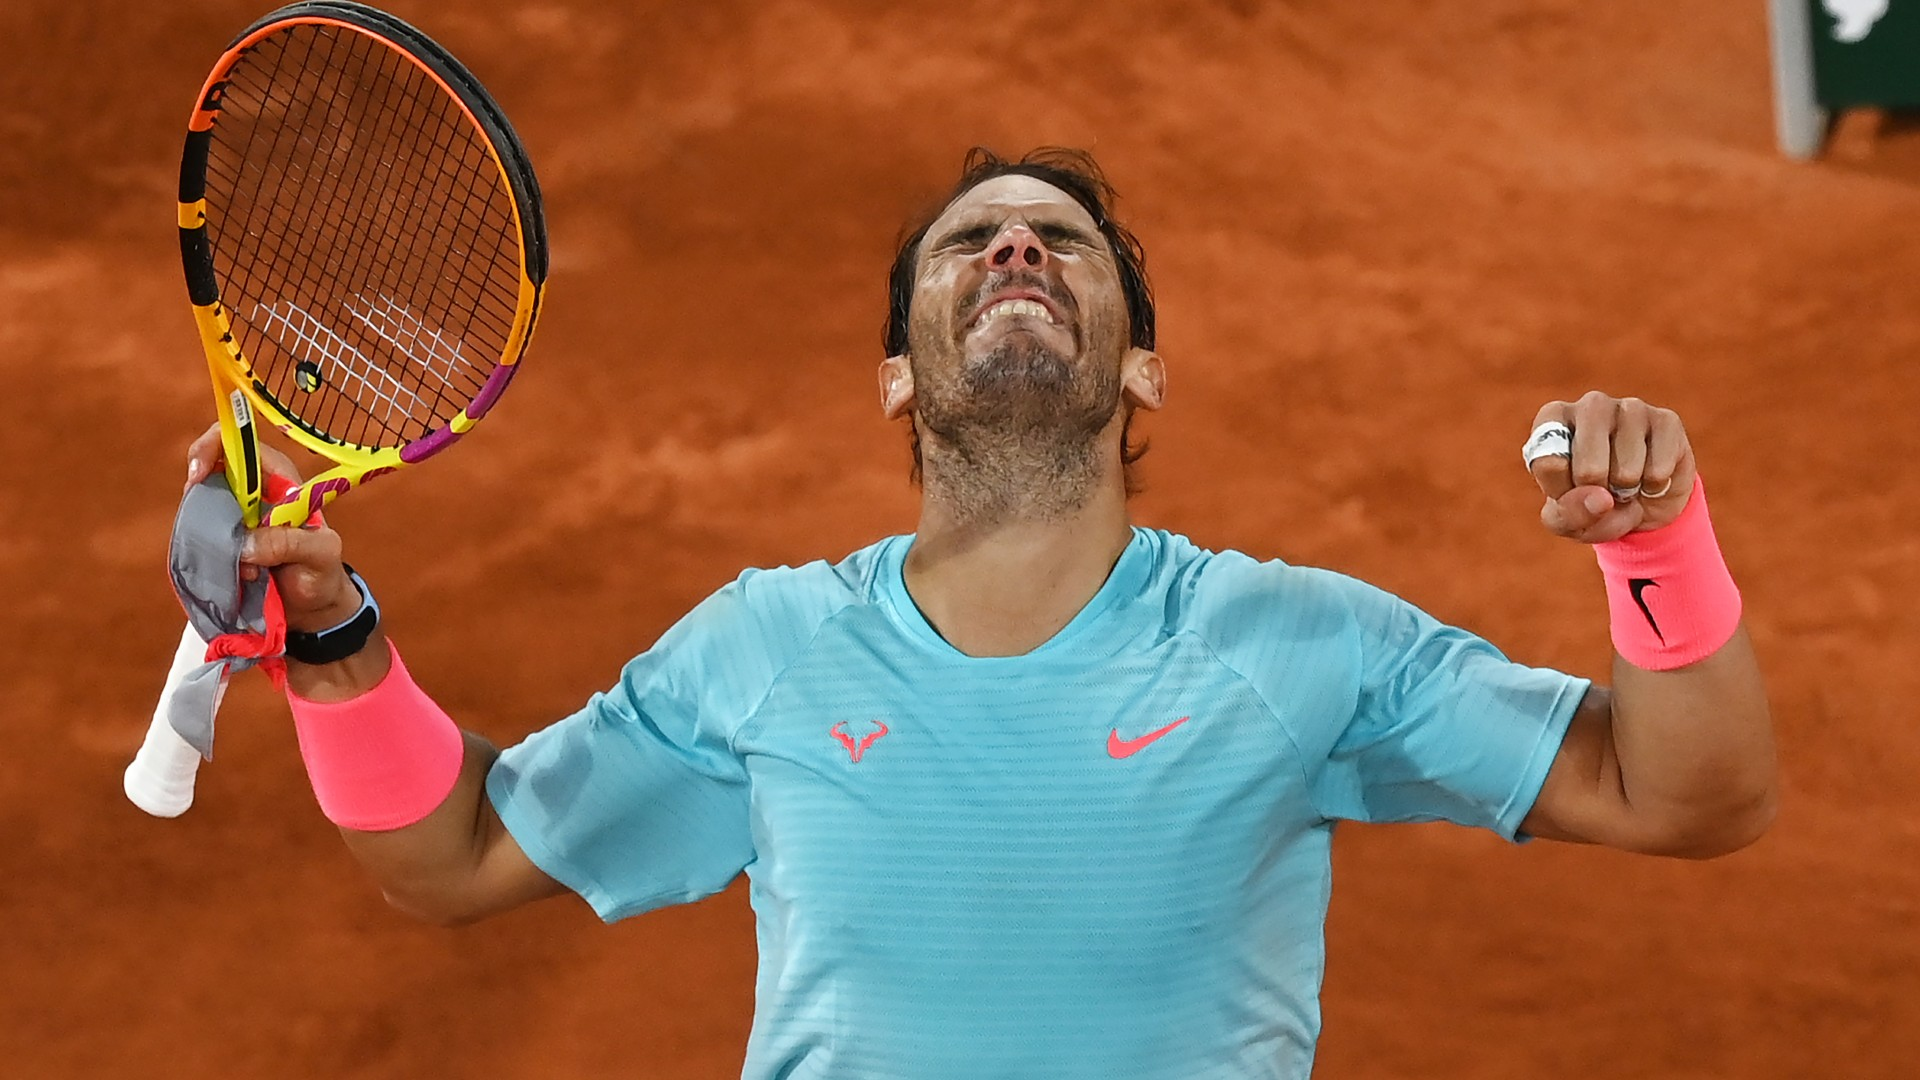 French Open 2020: Playing aggressively is 'the only way' insists Nadal